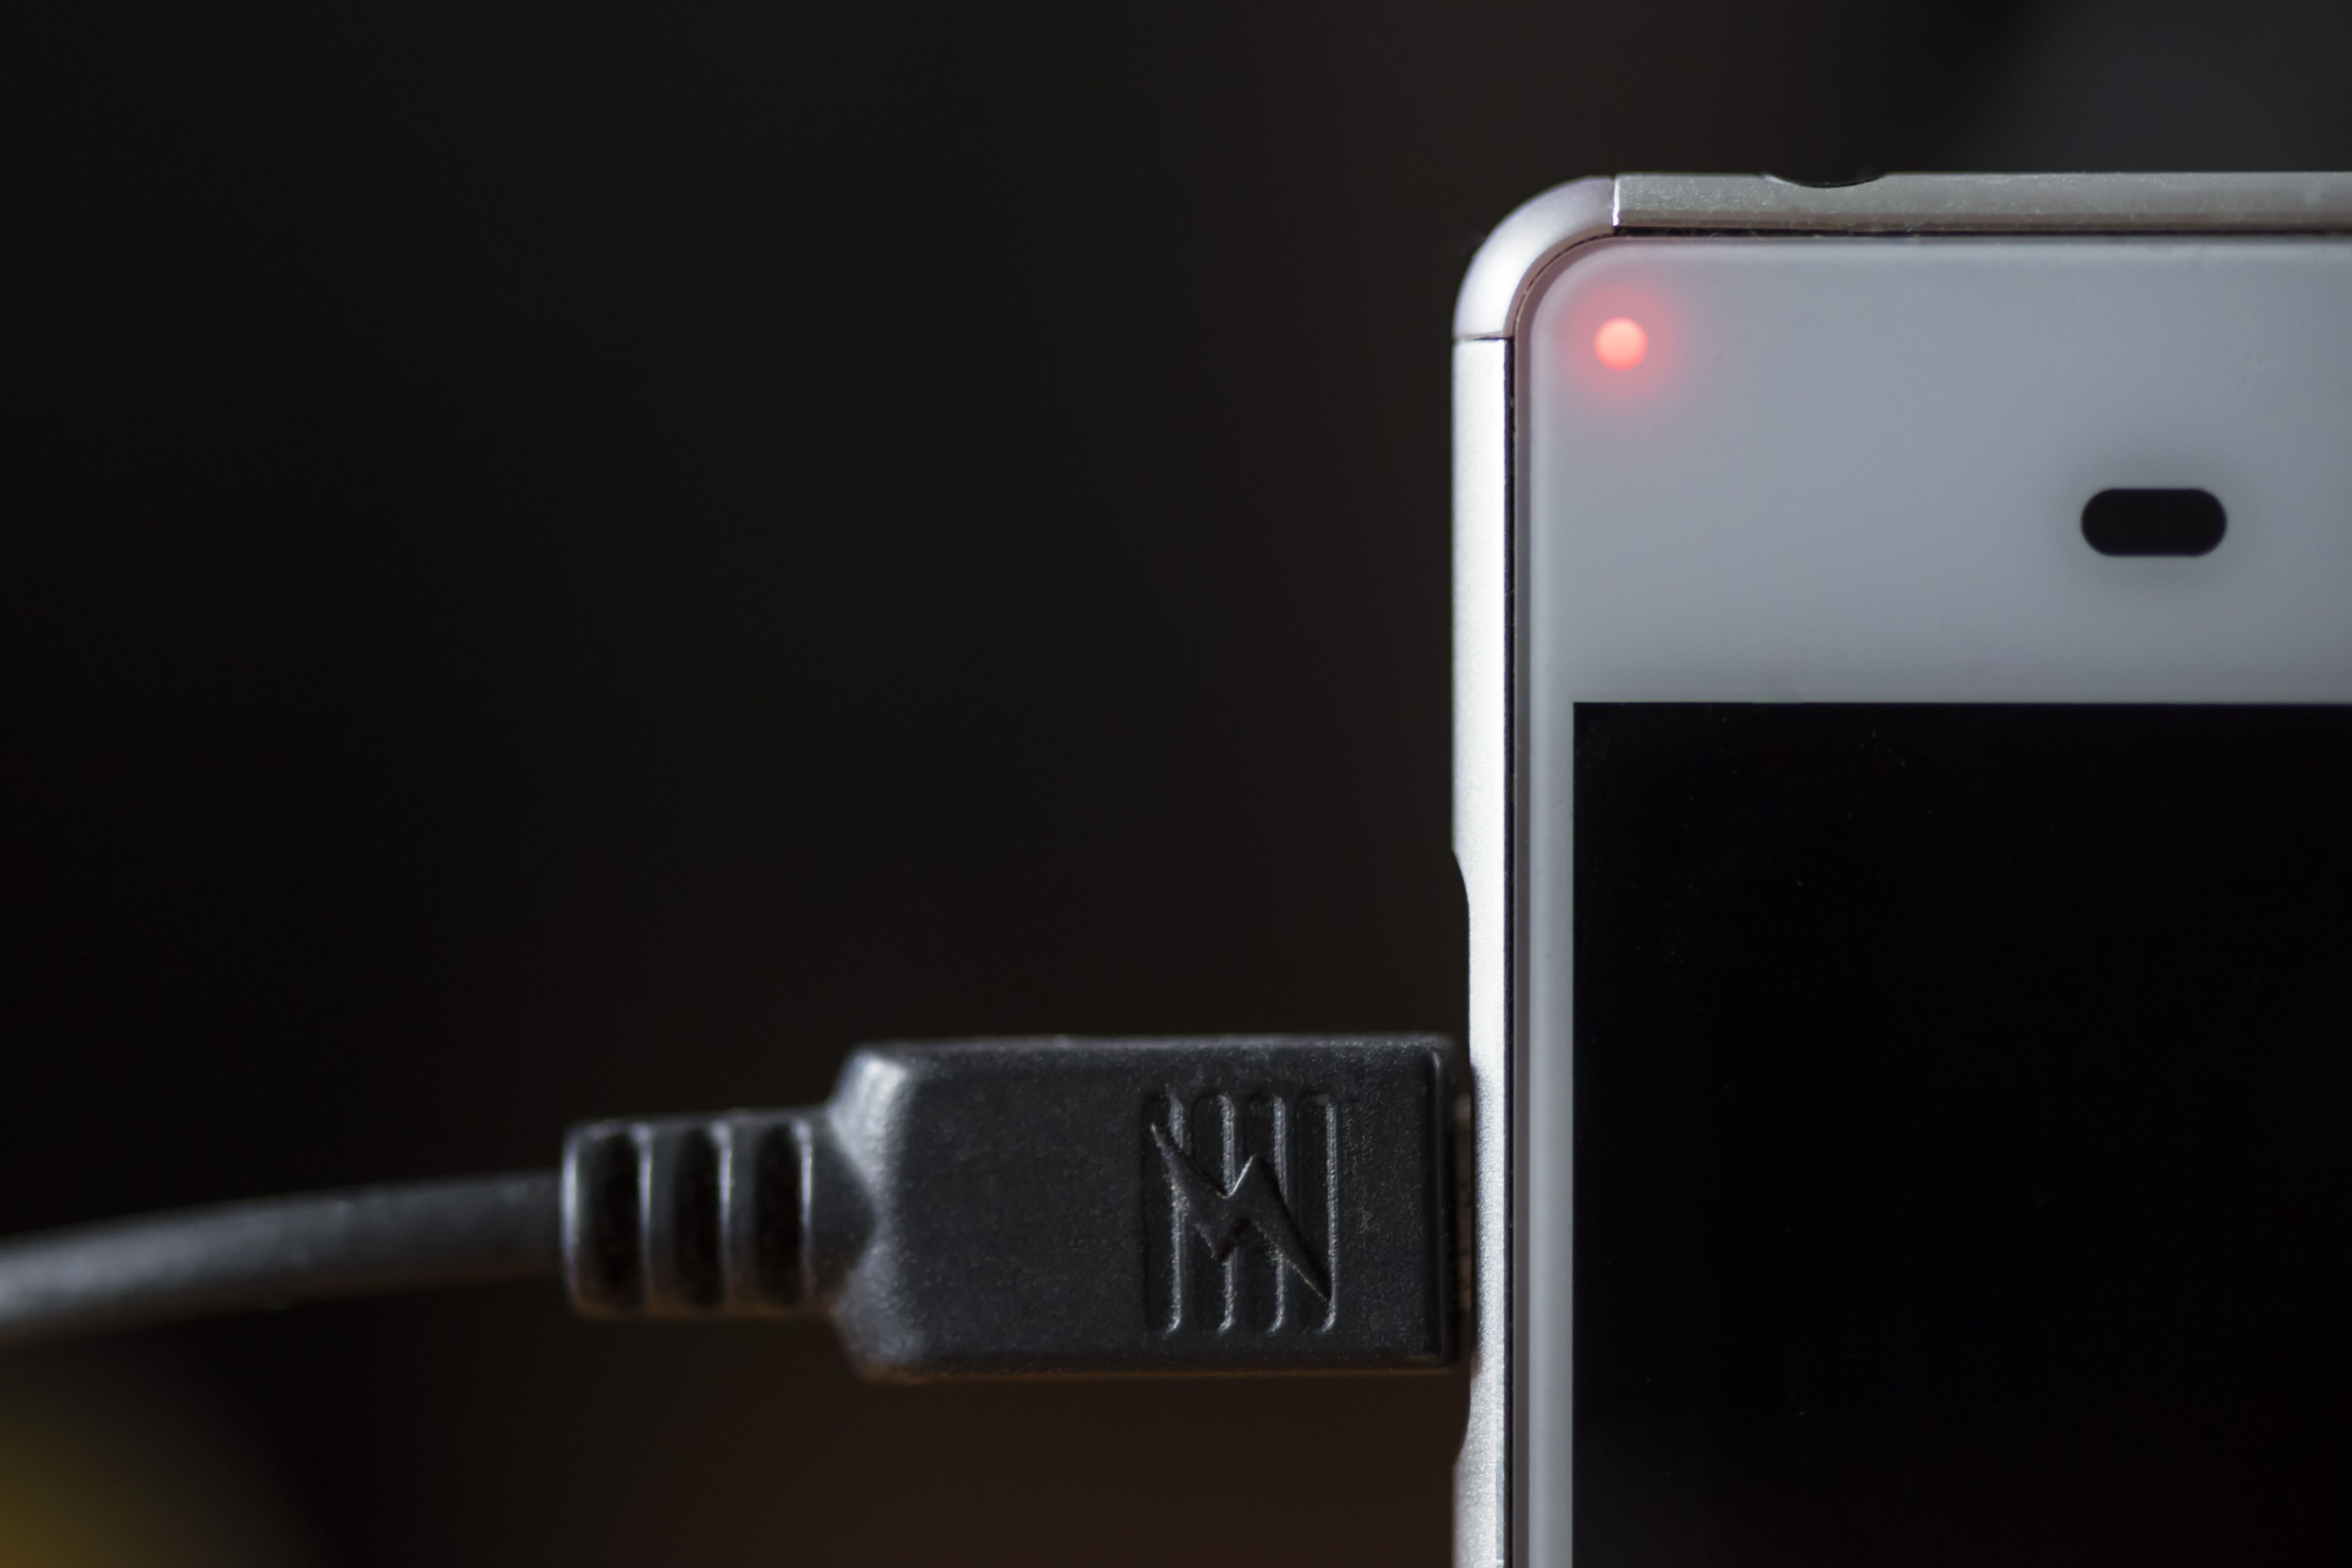 How to Set Up USB Tethering for Windows 10